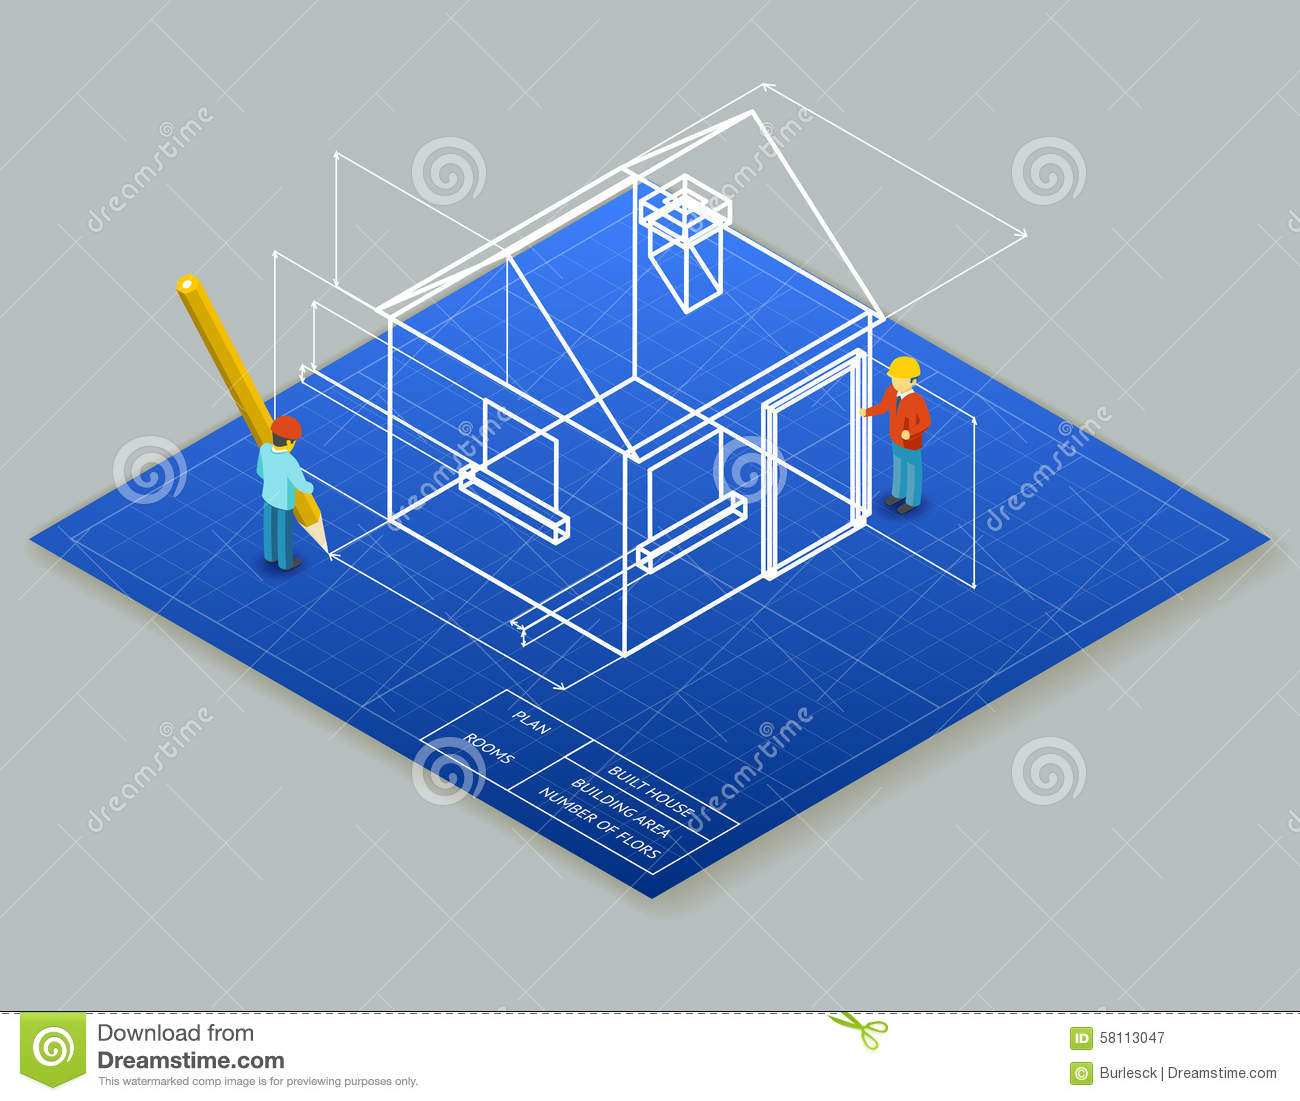 Architectural design blueprint drawing 3d stock vector image architectural design blueprint drawing 3d malvernweather